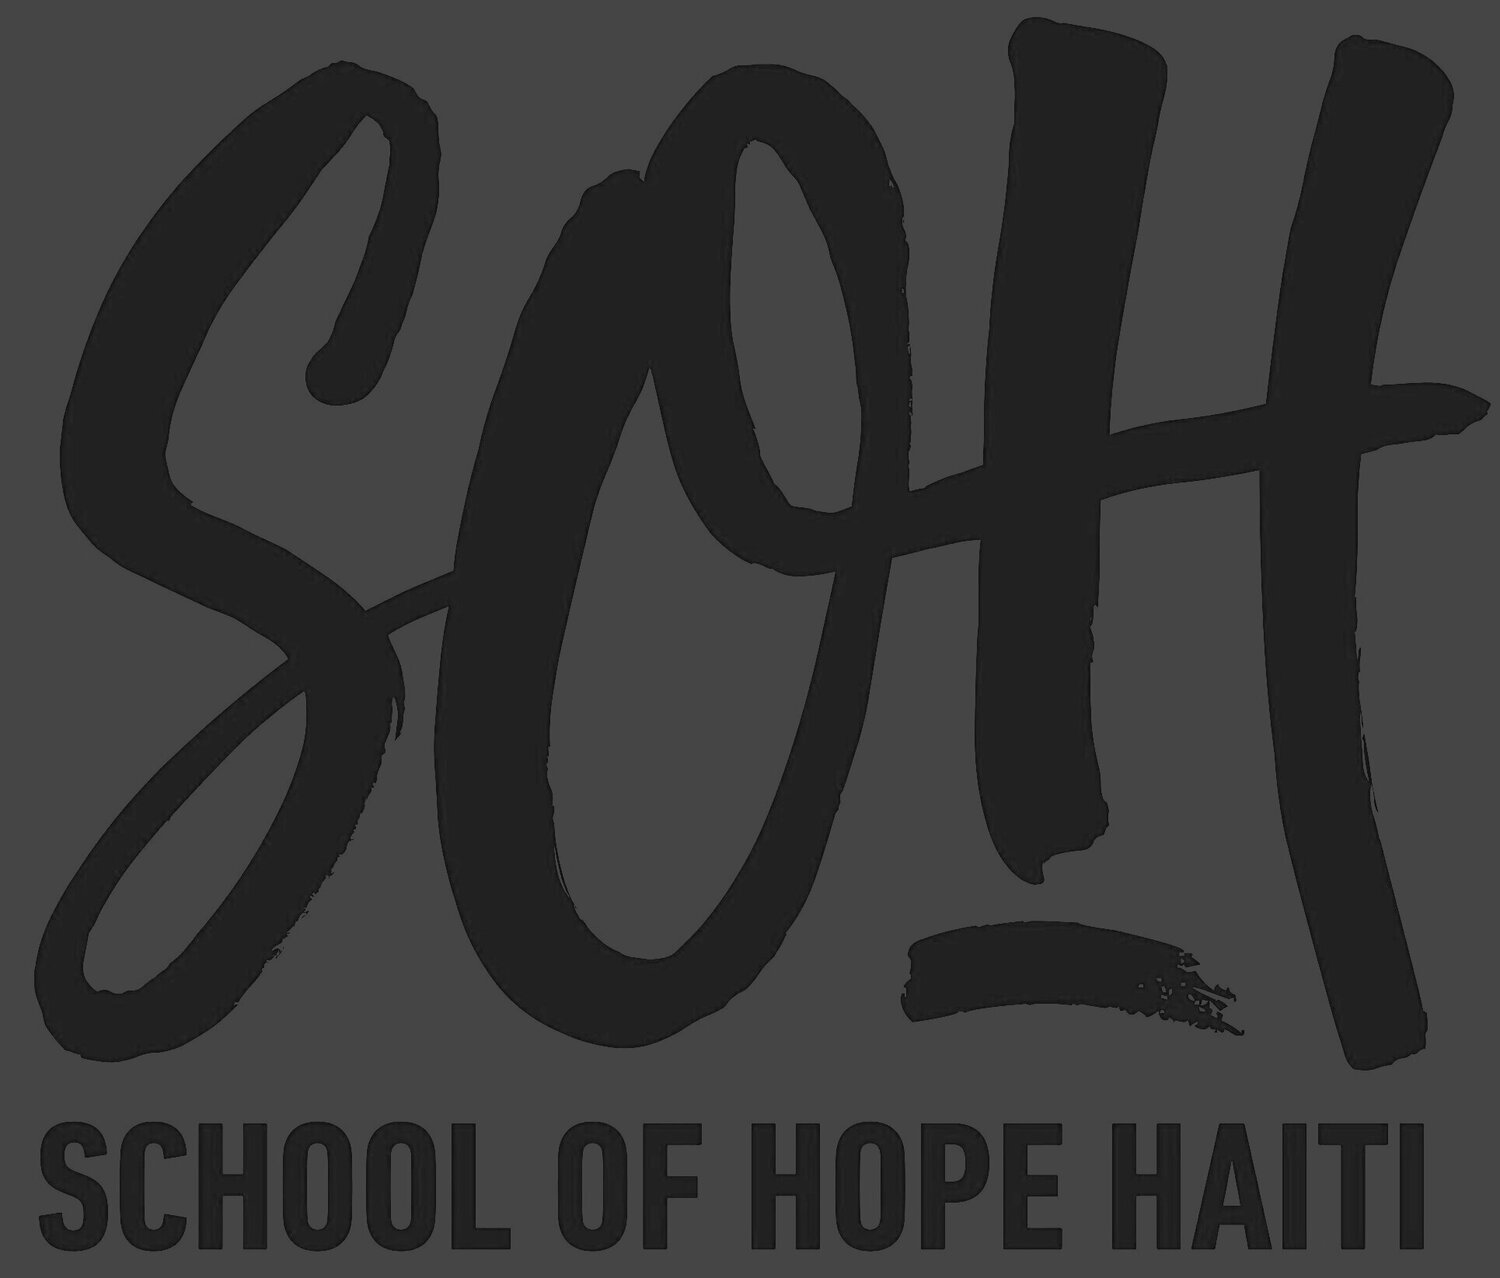 School of Hope - Haiti